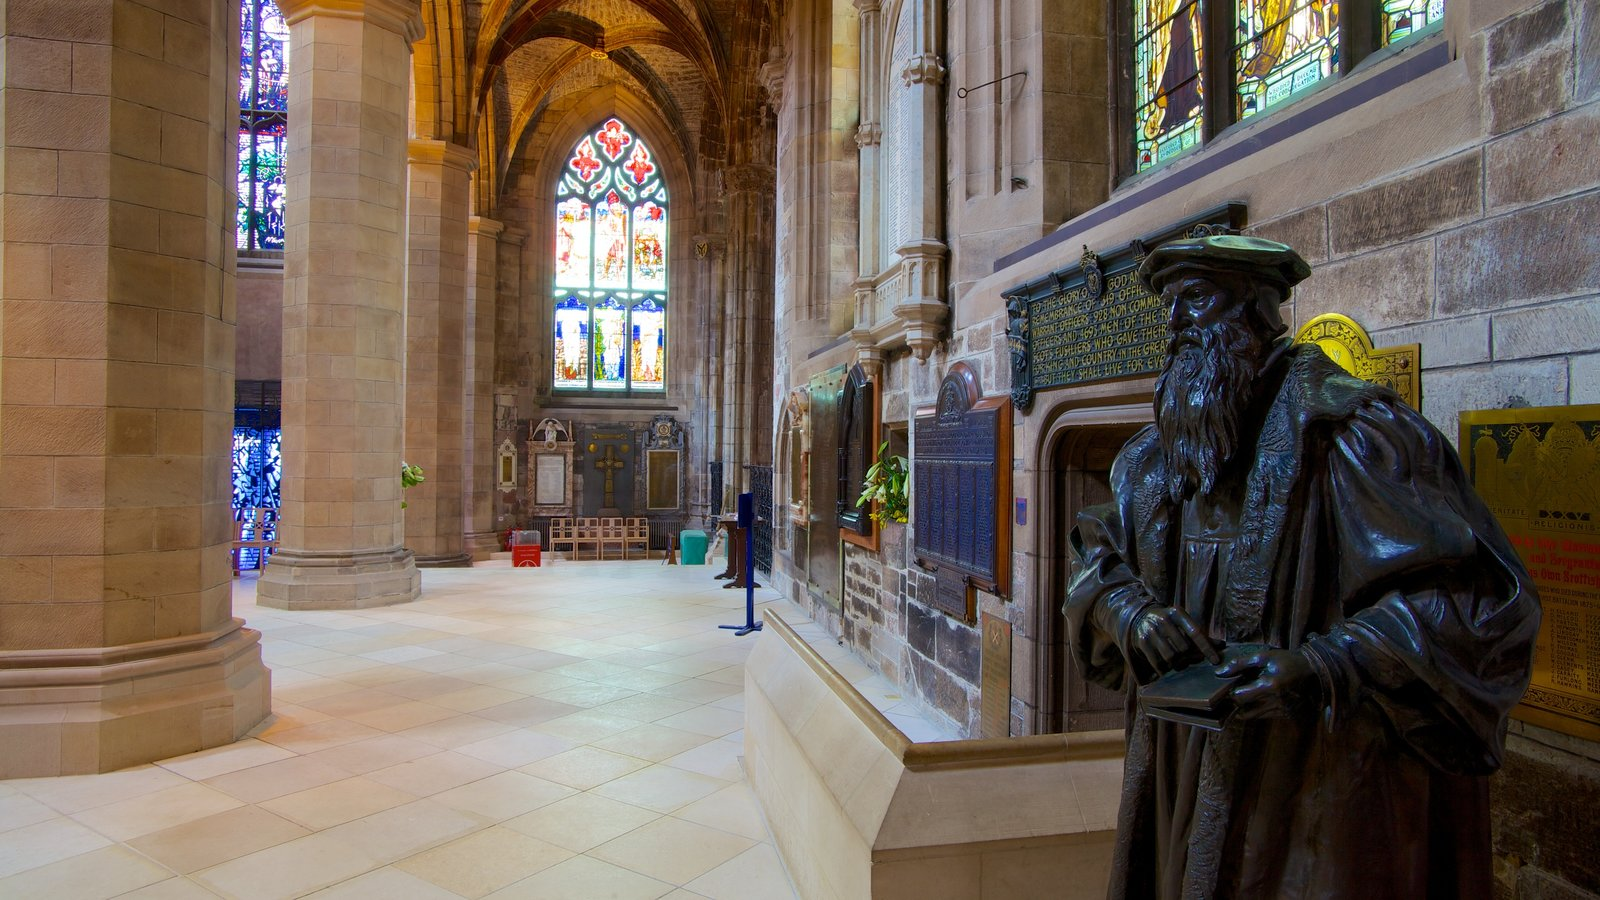 St. Giles\\\' Cathedral which includes interior views, a church or cathedral and religious aspects